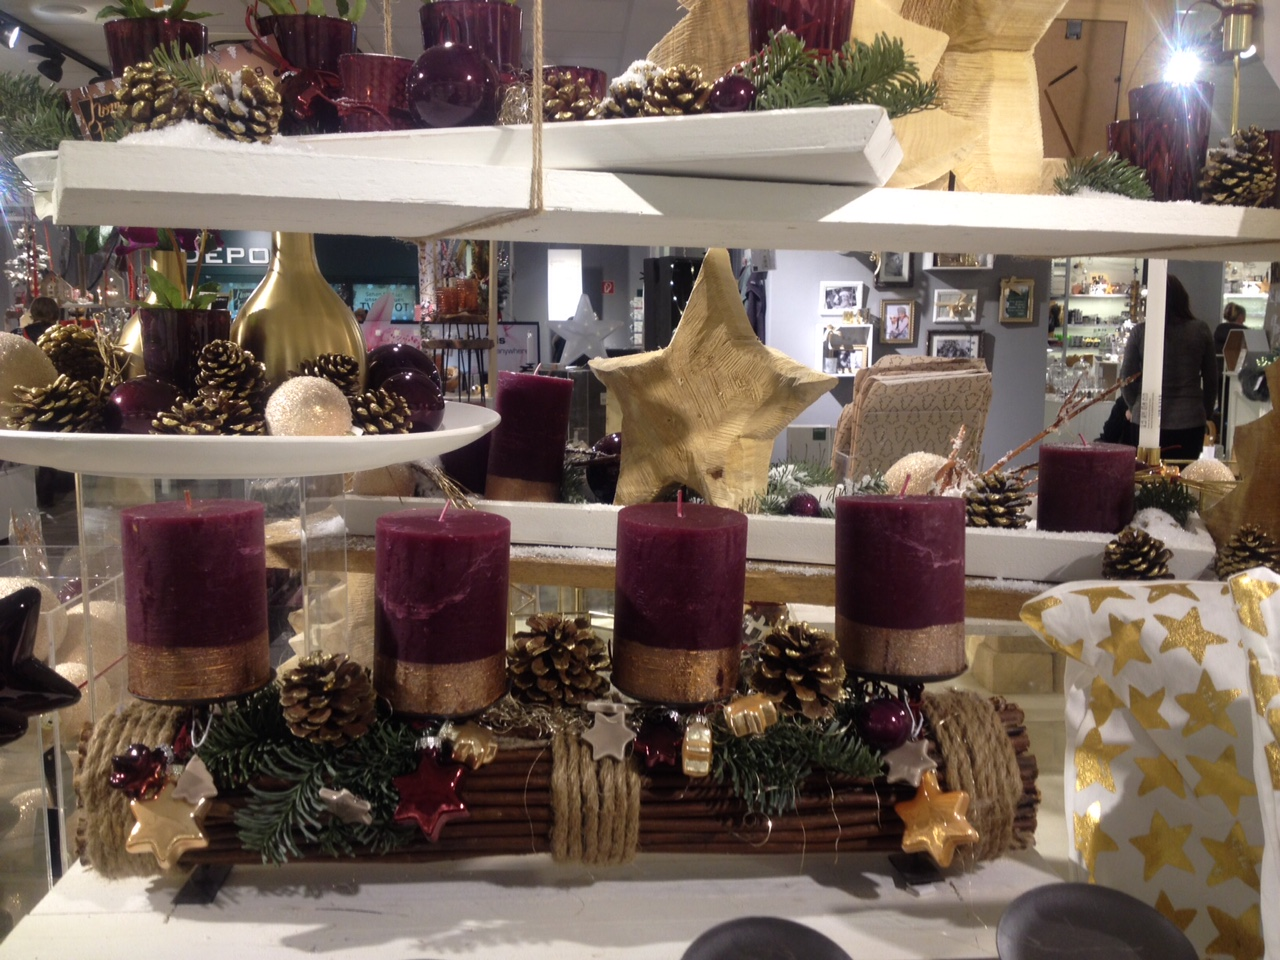 Adventskranz in gold und mauve